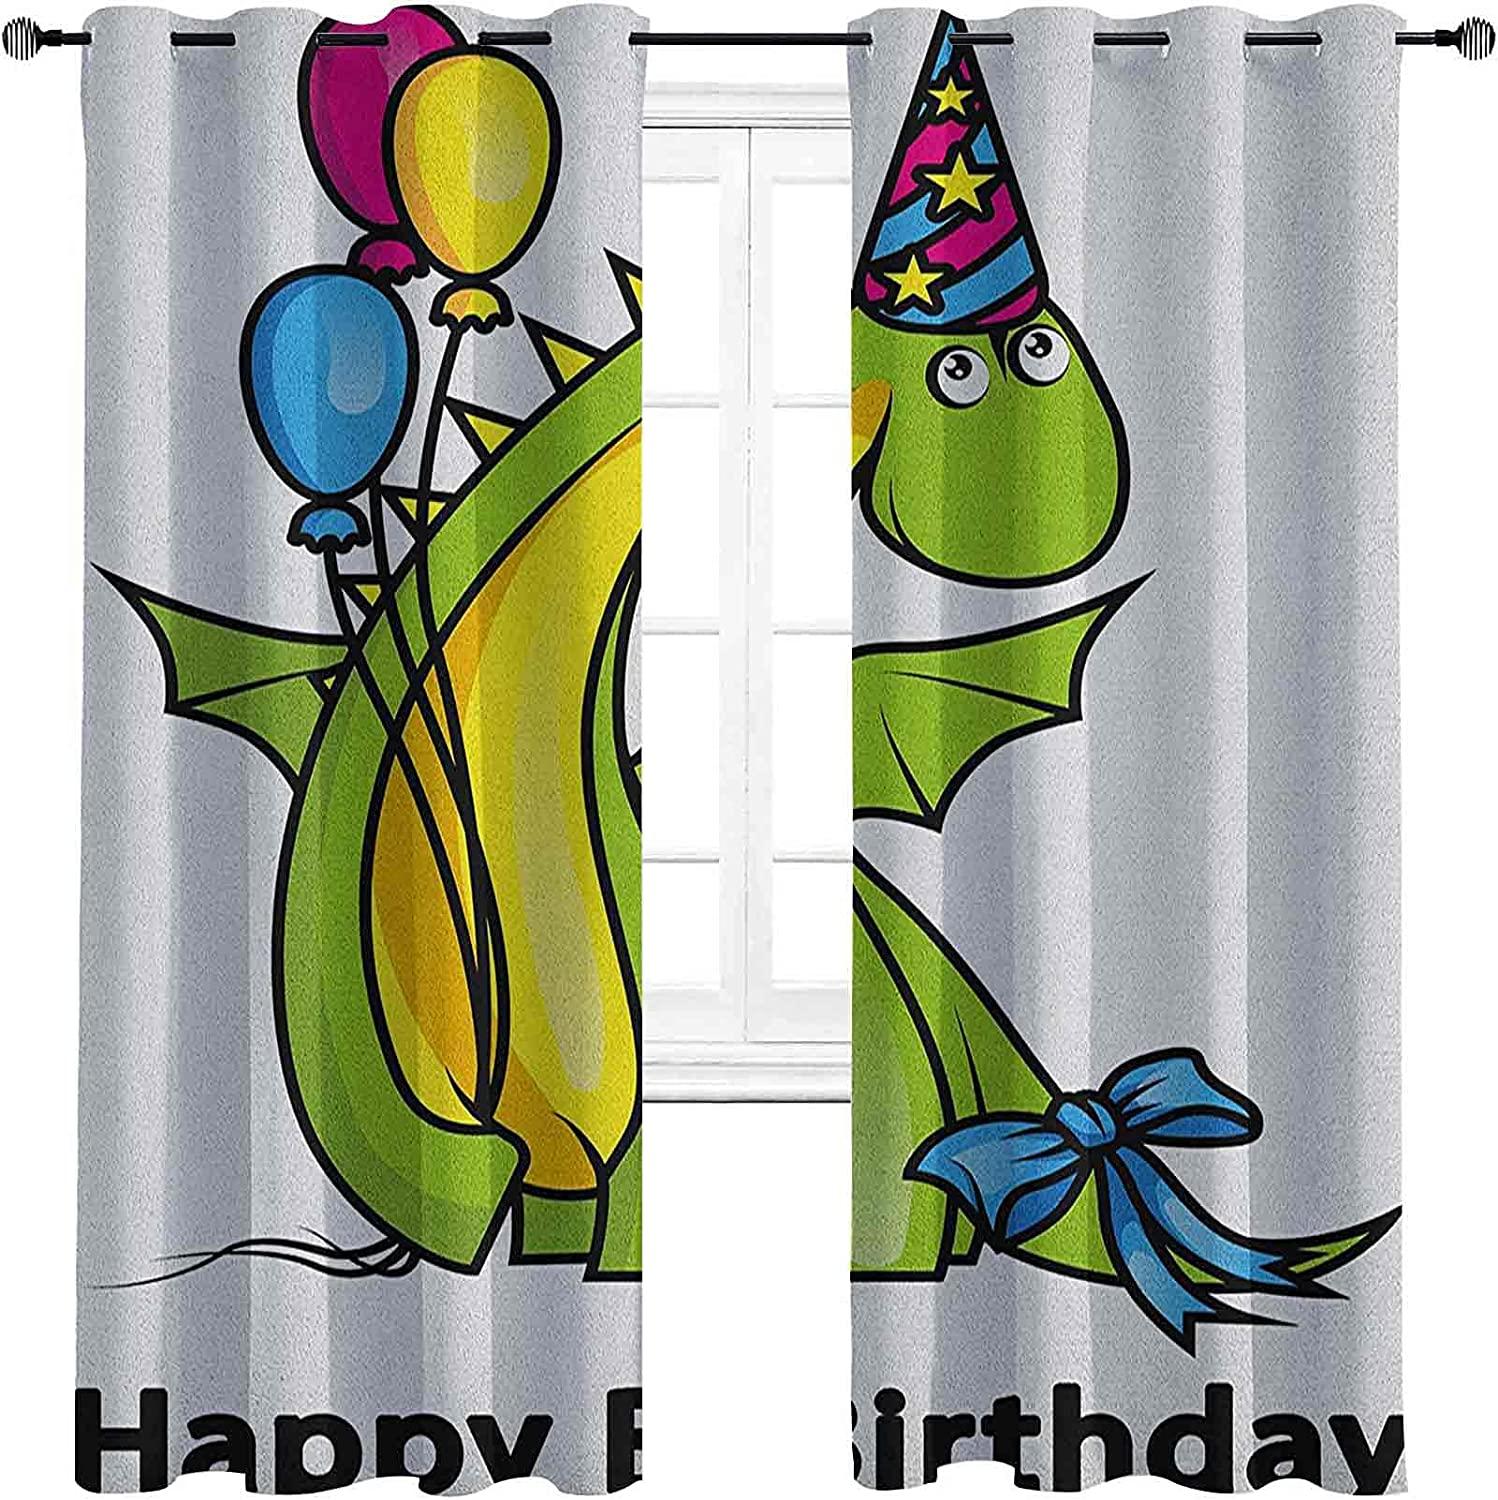 Kids Birthday Blackout Curtains Safety and trust with Grommets Little Bab Los Angeles Mall darken